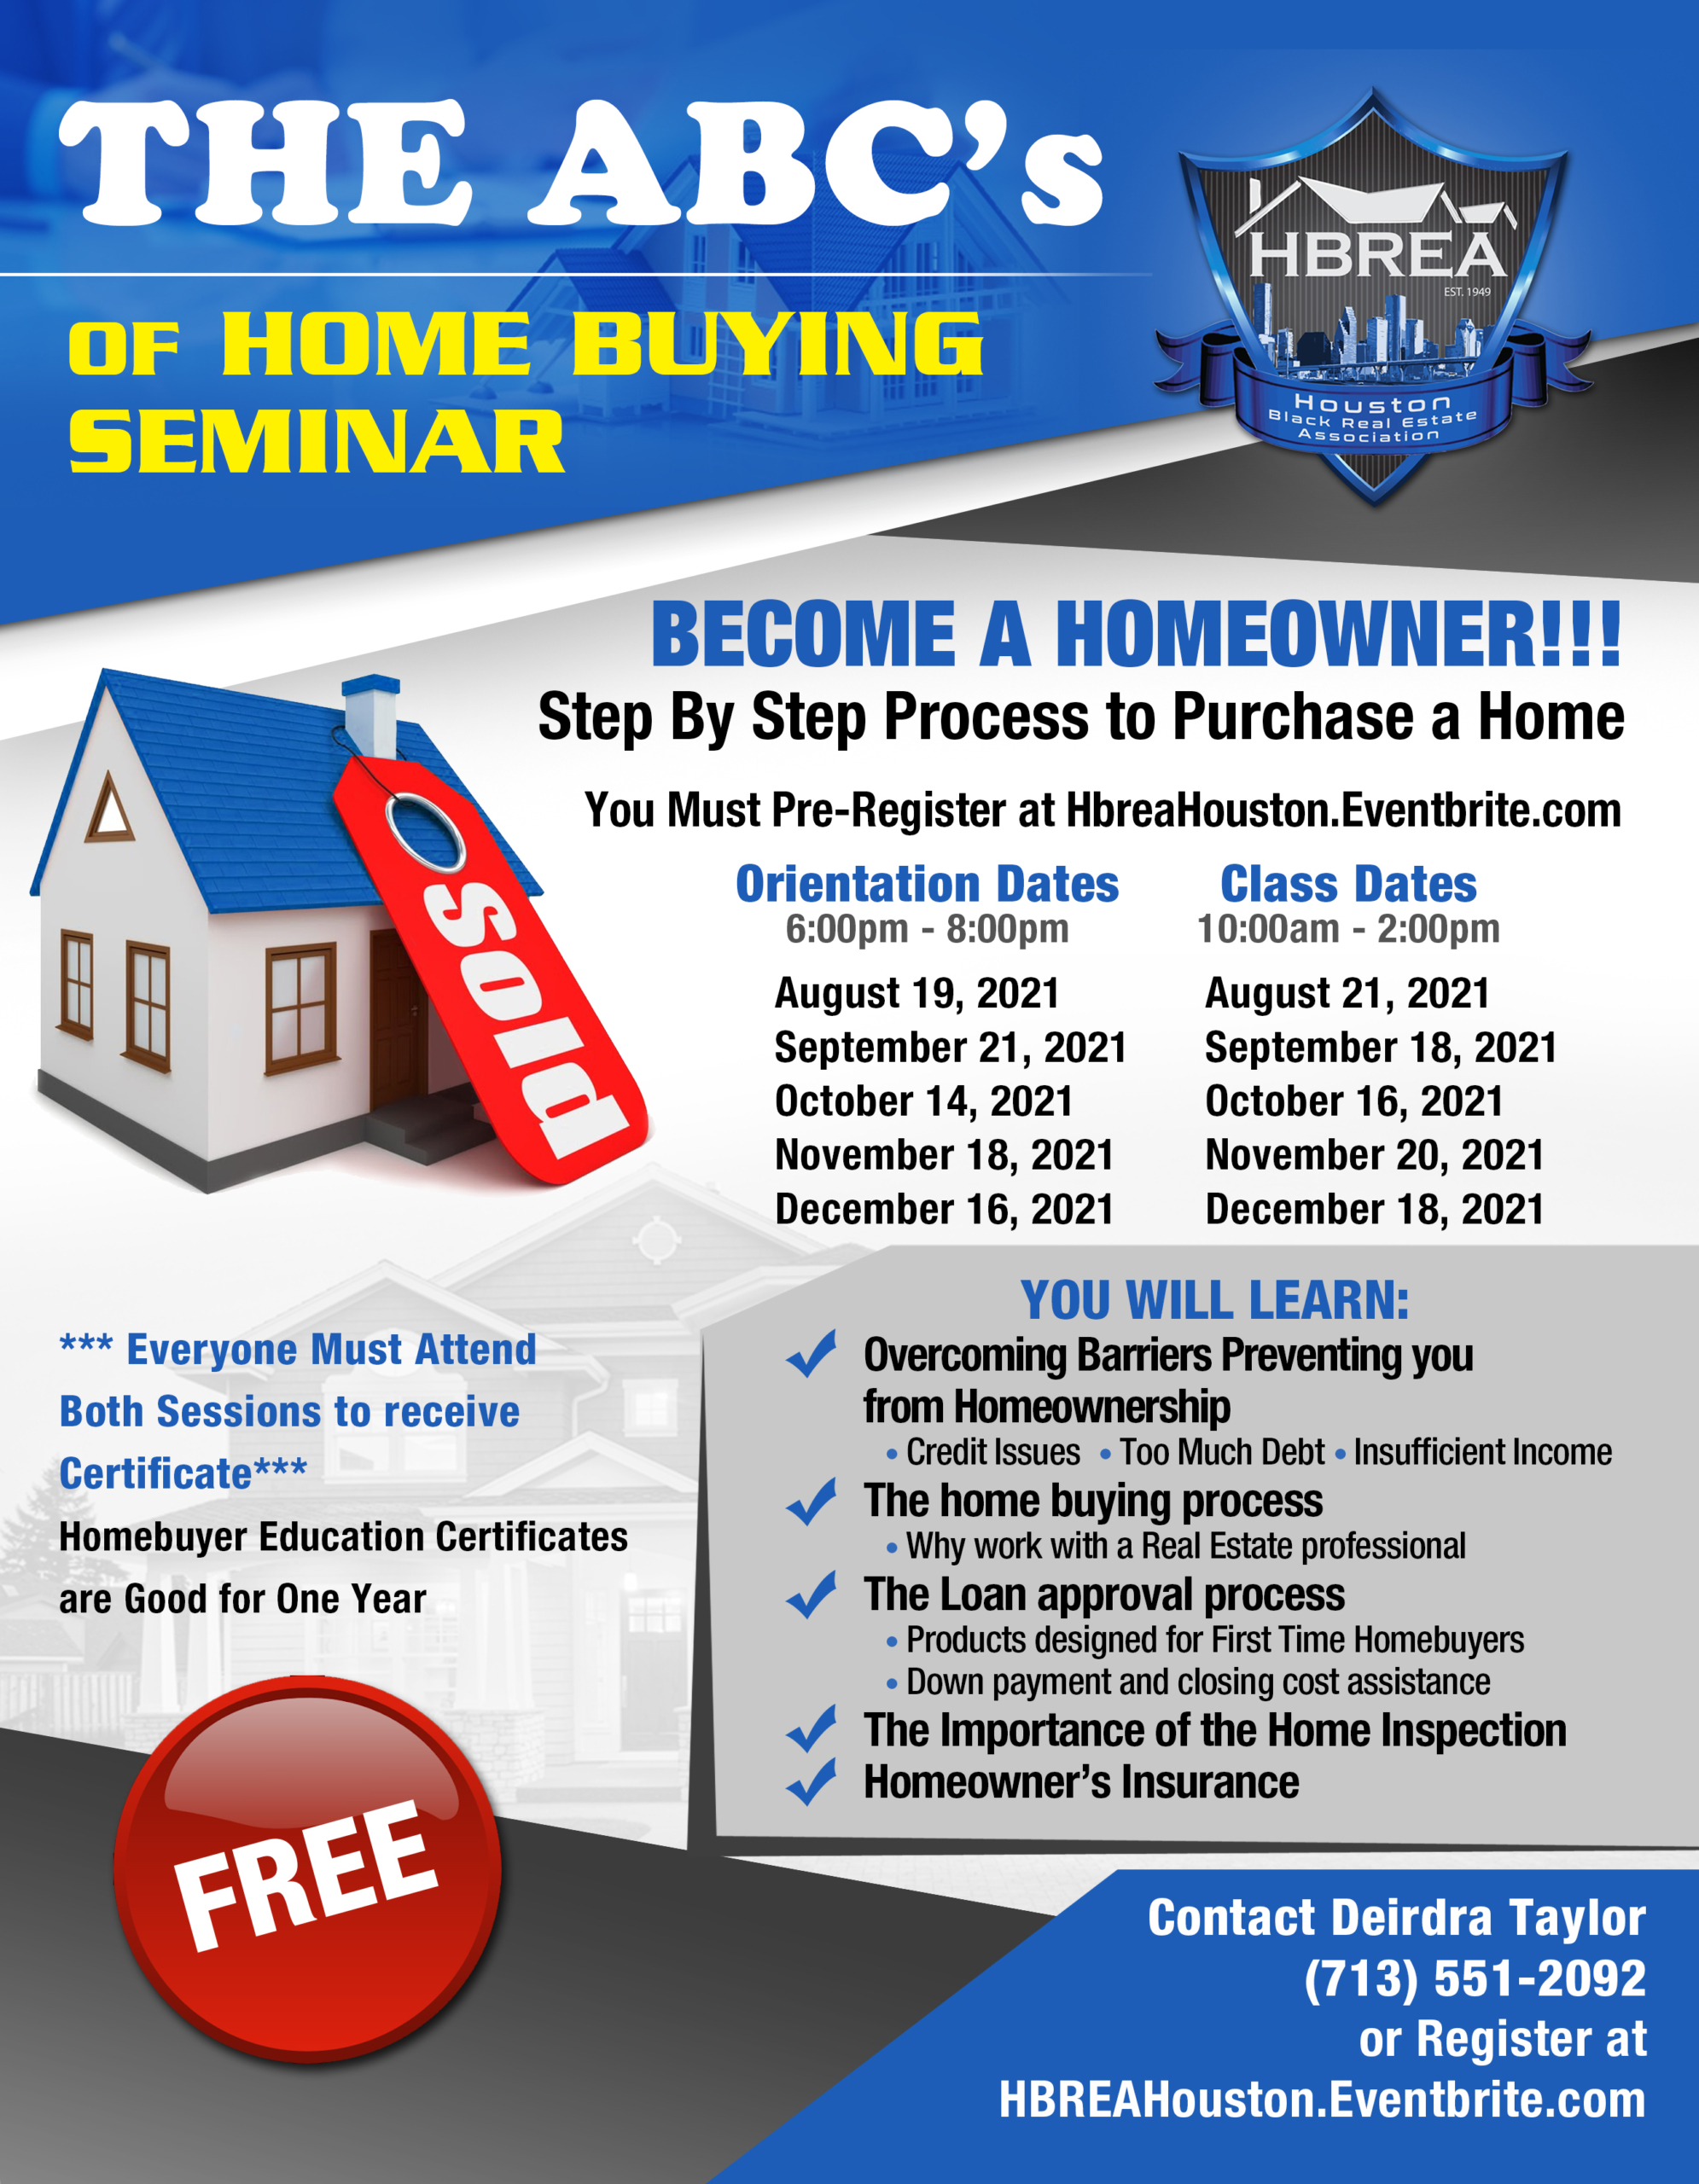 HBREA - The ABC's of Home Buying Webinar